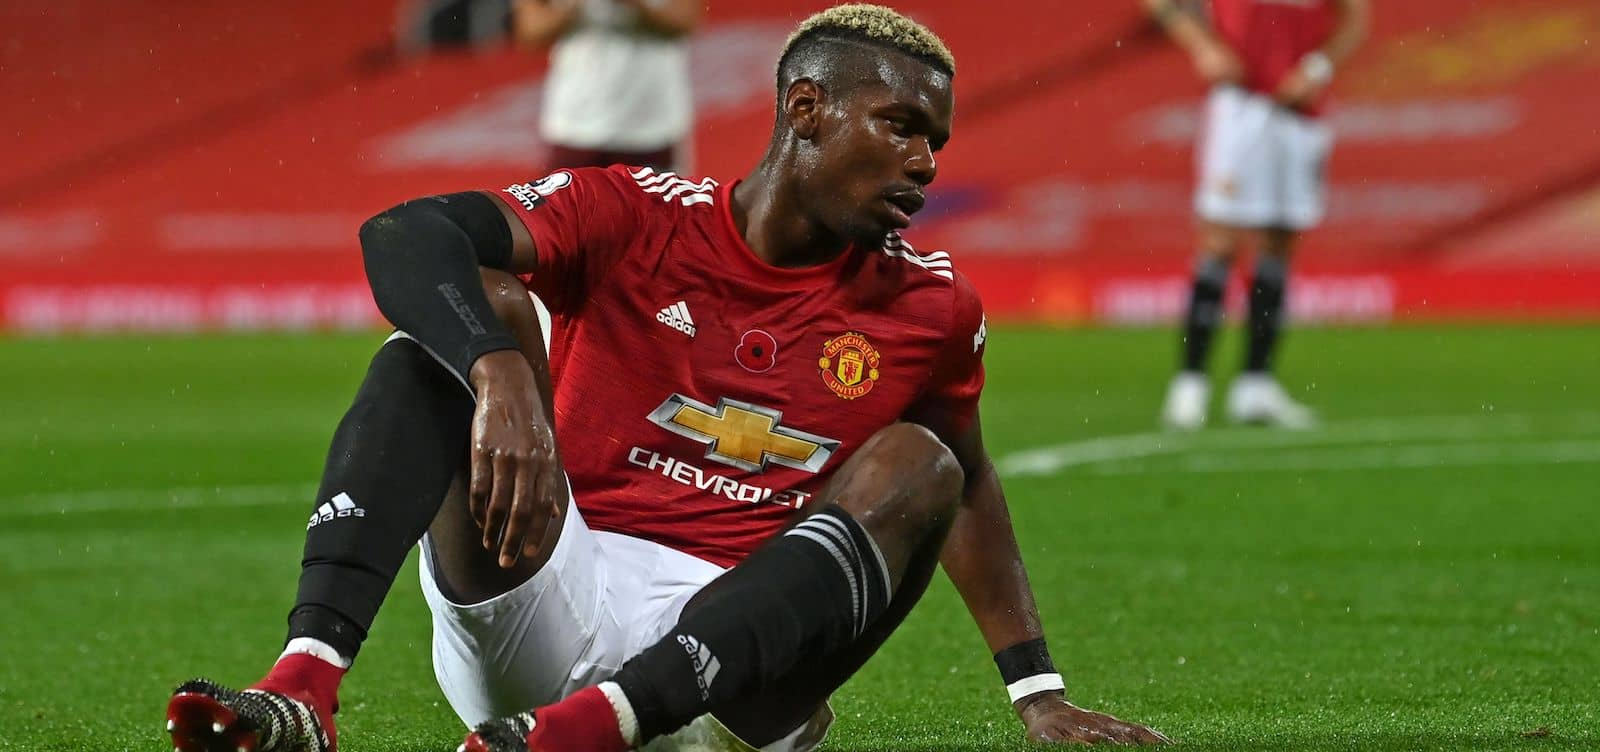 Paul Pogba – struggling for form, or not trying? The statistics